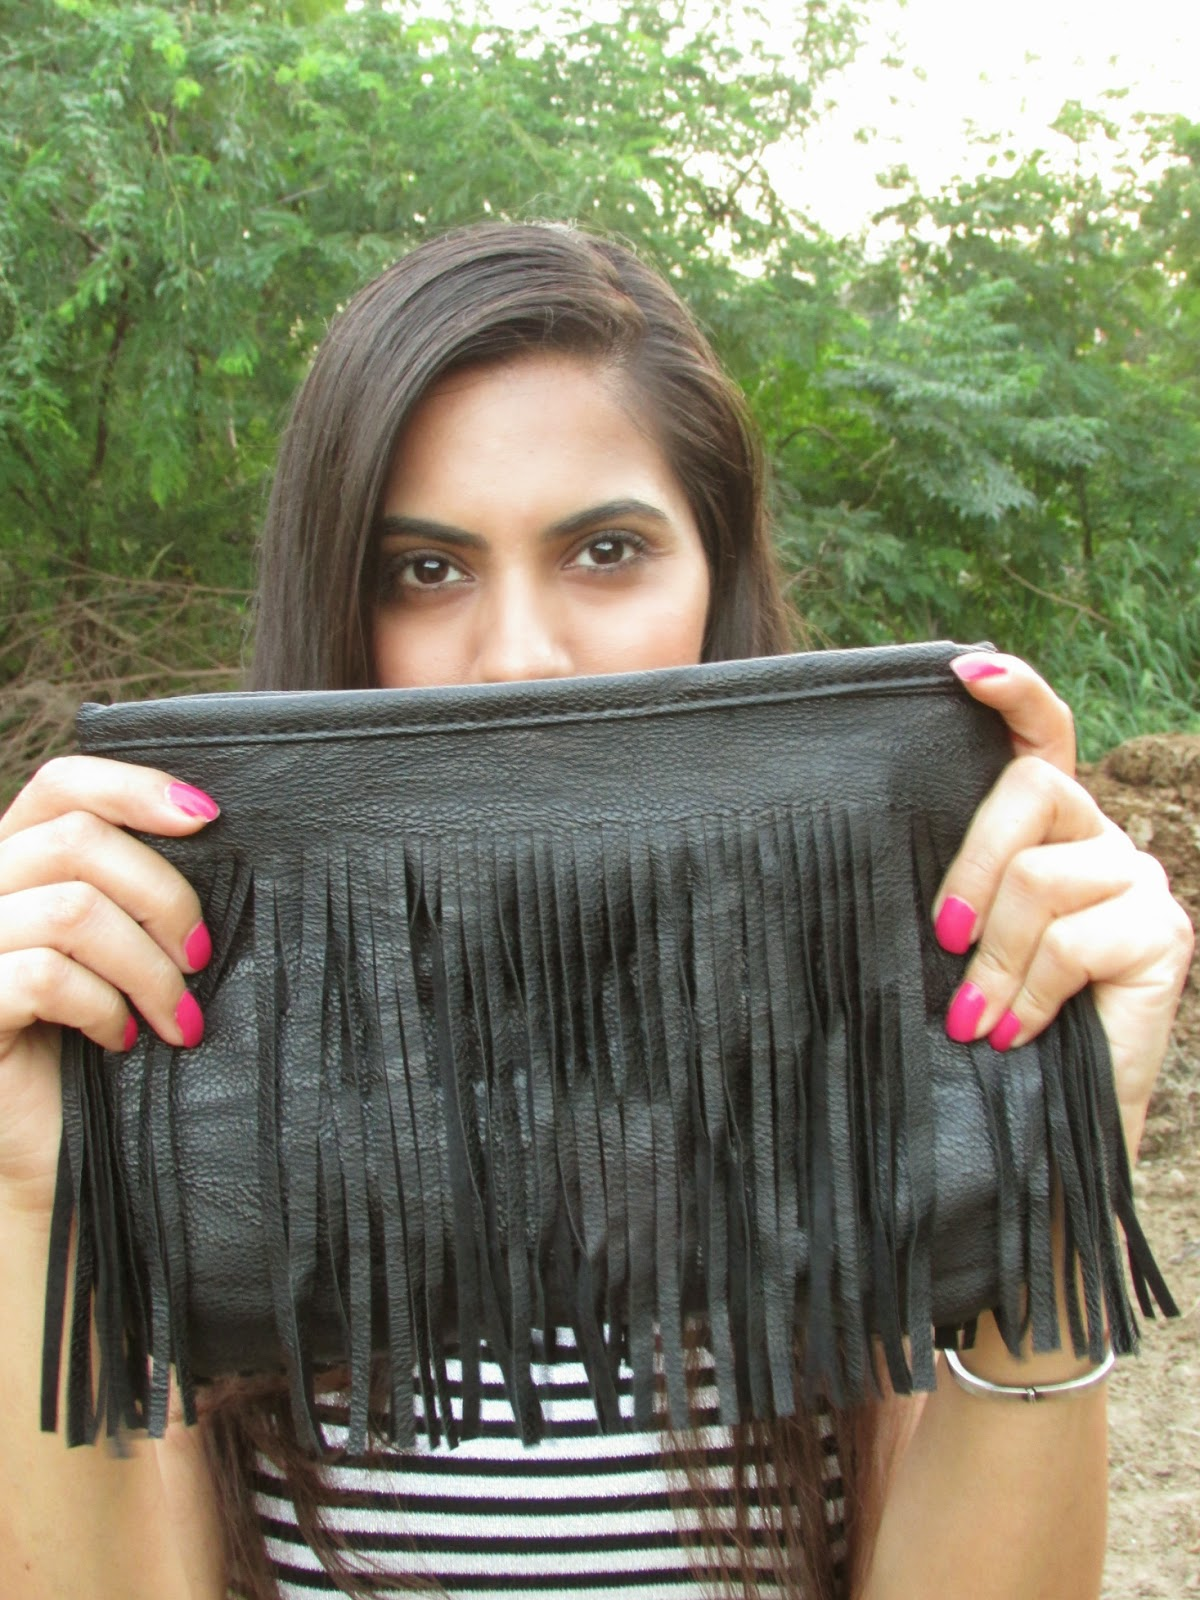 Tassel, tassel bag, tassel bag online, cheap bag, bag, bag online, cheap bag online, bag with tassels, tassel trend, leather bag, black lather bag, black leather bag with tassels, genuine leather bag, cheap black leather bag, vessos bag, vessos leather bag, vessos leather bag online, vessos bag with tassel, tassels bag leather, cheap bags online, cheap leather bags online, cheap genuine leather bag, cheap genius leather bag online, vessos review,crochet , lace , summer, white , crochet top , lace top , white lace top , white crochet top , net , net top , white net top,Statement necklace, necklace, statement necklaces, big necklace, heavy necklaces , gold necklace, silver necklace, silver statement necklace, gold statement necklace, studded statement necklace , studded necklace, stone studded necklace, stone necklace, stove studded statement necklace, stone statement necklace, stone studded gold statement necklace, stone studded silver statement necklace, black stone necklace, black stone studded statement necklace, black stone necklace, black stone statement necklace, neon statement necklace, neon stone statement necklace, black and silver necklace, black and gold necklace, blank and silver statement necklace, black and gold statement necklace, silver jewellery, gold jewellery, stove jewellery, stone studded jewellery, imitation jewellery, artificial jewellery, junk jewellery, cheap jewellery ,vessos Statement necklace, vessos necklace, vessos statement necklaces,vessos big necklace, vessos  heavy necklaces , vessos gold necklace, vessos silver necklace,  vessos  statement necklace,vessos  gold statement necklace,vessos studded statement necklace , vessos studded necklace, vessos stone studded necklace, vessos stone necklace, vessos stove studded statement necklace, vessos stone statement necklace, vessos stone studded gold statement necklace, vessos stone studded silver statement necklace, vessos black stone necklace, vessos black stone studded statement necklace, vessos black stone necklace, vessos black stone statement necklace, vessos neon statement necklace, vessos neon stone statement vessos, vessos  black and silver necklace, vessos black and gold necklace, vessos black  and silver statement necklace, vessos black and gold statement necklace, silver jewellery, vessos gold jewellery, vessos stove jewellery, vessos stone studded jewellery, vessos imitation jewellery, vessos artificial jewellery, vessos junk jewellery, vessos cheap jewellery ,Cheap Statement necklace, Cheap necklace, Cheap statement necklaces,Cheap big necklace, Cheap heavy necklaces , Cheap gold necklace, Cheap silver necklace, Cheap silver statement necklace,Cheap gold statement necklace, Cheap studded statement necklace , Cheap studded necklace, Cheap stone studded necklace, Cheap stone necklace, Cheap stove studded statement necklace, Cheap stone statement necklace, Cheap stone studded gold statement necklace, Cheap stone studded silver statement necklace, Cheap black stone necklace, Cheap black stone studded statement necklace, Cheap black stone necklace, Cheap black stone statement necklace, Cheap neon statement necklace, Cheap neon stone statement necklace, Cheap black and silver necklace, Cheap black and gold necklace, Cheap black  and silver statement necklace, Cheap black and gold statement necklace, silver jewellery, Cheap gold jewellery, Cheap stove jewellery, Cheap stone studded jewellery, Cheap imitation jewellery, Cheap artificial jewellery, Cheap junk jewellery, Cheap cheap jewellery , Black pullover, black and grey pullover, black and white pullover, back cutout, back cutout pullover, back cutout sweater, back cutout jacket, back cutout top, back cutout tee, back cutout tee shirt, back cutout shirt, back cutout dress, back cutout trend, back cutout summer dress, back cutout spring dress, back cutout winter dress, High low pullover, High low sweater, High low jacket, High low top, High low tee, High low tee shirt, High low shirt, High low dress, High low trend, High low summer dress, High low spring dress, High low winter dress,vessos Black pullover, vessos black and grey pullover, vessos black and white pullover, vessos back cutout, vessos back cutout pullover, vessos back cutout sweater, vessos  back cutout jacket, vessos back cutout top, vessos back cutout tee, vessos back cutout tee shirt, vessos back cutout shirt, vessos back cutout dress, vessos back cutout trend, vessos back cutout summer dress, vessos back cutout spring dress, vessos back cutout winter dress, vessos High low pullover, vessos High low sweater, vessos High low jacket, vessos High low top, vessos High low tee, vessos High low tee shirt, vessos High low shirt, vessos High low dress, vessos High low trend, vessos High low summer dress, vessos High low spring dress, vessos High low winter dress,Cropped, cropped tee,cropped tee shirt , cropped shirt, cropped sweater, cropped pullover, cropped cardigan, cropped top, cropped tank top, Cheap Cropped, cheap cropped tee,cheap cropped tee shirt ,cheap  cropped shirt, cheap cropped sweater, cheap cropped pullover, cheap cropped cardigan,cheap  cropped top, cheap cropped tank top,banggood Cropped,vessos cropped tee, vessos cropped tee shirt , vessos cropped shirt, vessos cropped sweater, vessos cropped pullover, vessos cropped cardigan, vessos cropped top, vessos cropped  top,Winter Cropped, winter cropped tee, winter cropped tee shirt , winter cropped shirt, winter cropped sweater, winter cropped pullover, winter cropped cardigan, winter cropped top, winter cropped tank top,Leggings, winter leggings, warm leggings, winter warm leggings, fall leggings, fall warm leggings, tights, warm tights, winter tights, winter warm tights, fall tights, fall warm tights,vessos leggings, vessos tights, warm warm leggings, vessos warm tights, vessos winter warm tights, vessos fall warm tights,woollen tights , woollen leggings, shopclues woollen tights,vessos woollen leggings, woollen bottoms, vessos woollen bottoms, vessos woollen pants , woollen pants,Christmas , Christmas leggings, Christmas tights, shopclues Christmas, shopclues Christmas clothes, clothes for Christmas , shopclues Christmas leggings, shopclues Christmas tights, shopclues warm Christmas leggings, shopclues warm Christmas  tights, shopclues snowflake leggings, snowflake leggings, snowflake tights, shopclues rain deer tights, shopclues rain deer leggings, ugly Christmas sweater, Christmas tree, Christmas clothes, Santa clause,Wishlist, clothes wishlist,vessos wishlist, vessos, vessos.com, vessos wishlist, autumn wishlist,vessos  wish list, vessos.de,autumn clothes wishlist, autumn shoes wishlist, autumn bags wishlist, autumn boots wishlist, autumn pullovers wishlist, autumn cardigans wishlist, autymn coats wishlist,vessos clothes wishlist, vessos bags wishlist, vessos bags wishlist, vessos boots wishlist, vessos pullover wishlist, vessos cardigans wishlist, vessos autum clothes wishlist,winter clothes, wibter clothes wishlist, winter wishlist, wibter pullover wishlist, winter bags wishlist, winter boots wishlist, winter cardigans wishlist, winter leggings wishlist,vessos winter clothes, vessos autumn clothes, vessos winter collection, vessos autumn collection,Cheap clothes online,cheap dresses online, cheap jumpsuites online, cheap leggings online, cheap shoes online, cheap wedges online , cheap skirts online, cheap jewellery online, cheap jackets online, cheap jeans online, cheap maxi online, cheap makeup online, cheap cardigans online, cheap accessories online, cheap coats online,cheap brushes online,cheap tops online, chines clothes online, Chinese clothes,Chinese jewellery ,Chinese jewellery online,Chinese heels online,Chinese electronics online,Chinese garments,Chinese garments online,Chinese products,Chinese products online,Chinese accessories online,Chinese inline clothing shop,Chinese online shop,Chinese online shoes shop,Chinese online jewellery shop,Chinese cheap clothes online,Chinese  clothes shop online, korean online shop,korean garments,korean makeup,korean makeup shop,korean makeup online,korean online clothes,korean online shop,korean clothes shop online,korean dresses online,korean dresses online,cheap Chinese clothes,cheap korean clothes,cheap Chinese makeup,cheap korean makeup,cheap korean shopping ,cheap Chinese shopping,cheap Chinese online shopping,cheap korean online shopping,cheap Chinese shopping website,cheap korean shopping website, cheap online shopping,online shopping,how to shop online ,how to shop clothes online,how to shop shoes online,how to shop jewellery online,how to shop mens clothes online, mens shopping online,boys shopping online,boys jewellery online,mens online shopping,mens online shopping website,best Chinese shopping website, Chinese online shopping website for men,best online shopping website for women,best korean online shopping,best korean online shopping website,korean fashion,korean fashion for women,korean fashion for men,korean fashion for girls,korean fashion for boys,best chinese online shopping,best chinese shopping website,best chinese online shopping website,wholesale chinese shopping website,wholesale shopping website,chinese wholesale shopping online,chinese wholesale shopping, chinese online shopping on wholesale prices, clothes on wholesale prices,cholthes on wholesake prices,clothes online on wholesales prices,online shopping, online clothes shopping, online jewelry shopping,how to shop online, how to shop clothes online, how to shop earrings online, how to shop,skirts online, dresses online,jeans online, shorts online, tops online, blouses online,shop tops online, shop blouses online, shop skirts online, shop dresses online, shop botoms online, shop summer dresses online, shop bracelets online, shop earrings online, shop necklace online, shop rings online, shop highy low skirts online, shop sexy dresses onle, men's clothes online, men's shirts online,men's jeans online, mens.s jackets online, mens sweaters online, mens clothes, winter coats online, sweaters online, cardigens online,beauty , fashion,beauty and fashion,beauty blog, fashion blog , indian beauty blog,indian fashion blog, beauty and fashion blog, indian beauty and fashion blog, indian bloggers, indian beauty bloggers, indian fashion bloggers,indian bloggers online, top 10 indian bloggers, top indian bloggers,top 10 fashion bloggers, indian bloggers on blogspot,home remedies, how to,  vessos online shopping,vessos online shopping review,vessos.com review,vessos online clothing store,vessos online chinese store,vessos online shopping,vessos  site review,vessos.com site review, vessos Chines fashion, vessos , vessos.com, vessos clothing, vessos dresses, vessos shoes, vessos accessories,vessos men cloths ,vessos makeup, vessos helth products,vessos Chinese online shopping, vessos Chinese store, vessos online chinese shopping, vessos lchinese shopping online,vessos, hoodboyz dresses, vessos clothes, vessos garments, vessos clothes, vessos skirts, vessos pants, vessos tops, vessos cardigans, vessos leggings, vessos fashion , vessos clothes fashion, vessos footwear, vessos footwear, vessos jewellery, vessos fashion jewellery, vessos rings, vessos necklace, vessos bracelets, vessos earings,Autumn, fashion, vessos, wishlist,Winter,fall, fall abd winter, winter clothes , fall clothes, fall and winter clothes, fall jacket, winter jacket, fall and winter jacket, fall blazer, winter blazer, fall and winter blazer, fall coat , winter coat, falland winter coat, fall coverup, winter coverup, fall and winter coverup, outerwear, coat , jacket, blazer, fall outerwear, winter outerwear, fall and winter outerwear, woolen clothes, wollen coat, woolen blazer, woolen jacket, woolen outerwear, warm outerwear, warm jacket, warm coat, warm blazer, warm sweater, coat , white coat, white blazer, white coat, white woolen blazer, white coverup, white woolens,vessos online shopping review,vessos.com review,vessos online clothing store,vessos online chinese store,vessos a online shopping,vessos site review,vessos.com site review, vessos Chines fashion, vessos , vessos.com, vessos clothing, vessos dresses, vessos shoes, vessos accessories,vessos men cloths ,vessos makeup, vessos helth products,vessos chinese online shopping, vessos Chinese store, vessos online chinese shopping, vessos chinese shopping online,vessos, vessos dresses, vessos clothes, vessos garments, vessos clothes, vessos skirts, vessos pants, vessos tops, vessos cardigans, vessos leggings, vessos fashion , vessos clothes fashion, vessos footwear, vessos fashion footwear, vessos jewellery, vessos fashion jewellery, vessos rings, vessos necklace, vessos bracelets, vessos earings,latest fashion trends online, online shopping, online shopping in india, online shopping in india from america, best online shopping store , best fashion clothing store, best online fashion clothing store, best online jewellery store, best online footwear store, best online store, beat online store for clothes, best online store for footwear, best online store for jewellery, best online store for dresses, worldwide shipping free, free shipping worldwide, online store with free shipping worldwide,best online store with worldwide shipping free,low shipping cost, low shipping cost for shipping to india, low shipping cost for shipping to asia, low shipping cost for shipping to korea,Friendship day , friendship's day, happy friendship's day, friendship day outfit, friendship's day outfit, how to wear floral shorts, floral shorts, styling floral shorts, how to style floral shorts, how to wear shorts, how to style shorts, how to style style denim shorts, how to wear denim shorts,how to wear printed shorts, how to style printed shorts, printed shorts, denim shorts, how to style black shorts, how to wear black shorts, how to wear black shorts with black T-shirts, how to wear black T-shirt, how to style a black T-shirt, how to wear a plain black T-shirt, how to style black T-shirt,how to wear shorts and T-shirt, what to wear with floral shorts, what to wear with black floral shorts,how to wear all black outfit, what to wear on friendship day, what to wear on a date, what to wear on a lunch date, what to wear on lunch, what to wear to a friends house, what to wear on a friends get together, what to wear on friends coffee date , what to wear for coffee,beauty,Pink, pink pullover, pink sweater, pink jumpsuit, pink sweatshirt, neon pink, neon pink sweater, neon pink pullover, neon pink jumpsuit , neon pink cardigan, cardigan , pink cardigan, sweater, jumper, jumpsuit, pink jumper, neon pink jumper, pink jacket, neon pink jacket, winter clothes, oversized coat, oversized winter clothes, oversized pink coat, oversized coat, oversized jacket,vessos pink, vessos  pink sweater, vessos pink jacket, vessos pink cardigan, vessos pink coat, vessos pink jumper, vessos neon pink, vessos neon pink jacket, vessos neon pink coat, vessos neon pink sweater, vessos neon pink jumper, vessos neon pink pullover,pink pullover, neon pink pullover,fur,furcoat,furjacket,furblazer,fur pullover,fur cardigan,front open fur coat,front open fur jacket,front open fur blazer,front open fur pullover,front open fur cardigan,real fur, real fur coat,real fur jacket,real fur blazer,real fur pullover,real fur cardigan, soft fur,soft fur coat,soft fur jacket,soft furblazer,soft fur pullover,sof fur cardigan, white fur,white fur coat,white fur jacket,white fur blazer, white fur pullover, white fur cardigan,trench, trench coat, trench coat online, trench coat india, trench coat online India, trench cost price, trench coat price online, trench coat online price, cheap trench coat, cheap trench coat online, cheap trench coat india, cheap trench coat online India, cheap trench coat , Chinese trench coat, Chinese coat, cheap Chinese trench coat, Korean coat, Korean trench coat, British coat, British trench coat, British trench coat online, British trench coat online, New York trench coat, New York trench coat online, cheap new your trench coat, American trench coat, American trench coat online, cheap American trench coat, low price trench coat, low price trench coat online , low price trench coat online india, low price trench coat india,vessos trench, vessos trench coat, vessos trench coat online, vessos trench coat india, vessos trench coat online India, vessos trench cost price,vessos trench coat price online, vessos trench coat online price, vessos cheap trench coat,  vessos trench coat online, vessos cheap trench coat india, vessos cheap trench coat online India, vessos cheap trench coat , vessos Chinese trench coat, vessos Chinese coat, vessos cheap Chinese trench coat, vessos Korean coat, vessos Korean trench coat, vessos British coat, vessos British trench coat, vessos British trench coat online, vessos British trench coat online, vessos New York trench coat, vessos New York trench coat online, vessos cheap new your trench coat, vessos American trench coat, vessos American trench coat online, vessos cheap American trench coat, vessos low price trench coat, vessos low price trench coat online , vessos low price trench coat online india, vessos low price trench coat india,how to wear trench coat, how to wear trench, how to style trench coat, how to style coats, how to style long coats, how to style winter coats, how to style winter trench coats, how to style winter long coats, how to style warm coats, how to style beige coat, how to style beige long coat, how to style beige trench coat, how to style beige coat, beige coat, beige long coat, beige long coat, beige frock coat, beige double breasted coat, double breasted coat, how to style frock coat, how to style double breasted coat, how to wear beige trench coat,how to wear beige coat, how to wear beige long coat, how to wear beige frock coat, how to wear beige double button coat, how to wear beige double breat coat, double button coat, what us trench coat, uses of trench coat, what is frock coat, uses of frock coat, what is long coat, uses of long coat, what is double breat coat, uses of double breasted coat, what is bouton up coat, uses of button up coat, what is double button coat, uses of double button coat, velvet leggings, velvet tights, velvet bottoms, embroided velvet leggings, embroided velvet tights, pattern tights, velvet pattern tights, floral tights , floral velvet tights, velvet floral tights, embroided  velvet leggings, pattern leggings , velvet pattern leggings , floral leggings , floral velvet leggings, velvet floral leggings ,eyeboxs velvet leggings,vessos velvet tights, vessos velvet bottoms,vessos embroided velvet leggings,vessos embroided velvet tights, vessos pattern tights, vessos velvet pattern tights, vessos floral tights , vessos floral velvet tights, vessos velvet floral tights, vessos embroided  velvet leggings, vessos  pattern leggings , vessos velvet pattern leggings , vessos floral leggings ,vessos floral velvet leggings, vessos velvet floral leggings ,vessos studded heels,studded heels , stud heels, valentinos , valentino heels, valentine shoes, valentino studded shoes, valentino studded heels, valentino studded sandels, black valentino, valentino footwear ,shoe sale , valentino look alikes, cartoon tee , cartoon , cartoon print , cartoon pattern , cartoon shirt , cartoon top , cartoon print top , cartoon print shirt, cartoon paint shorts , cartoon print tee